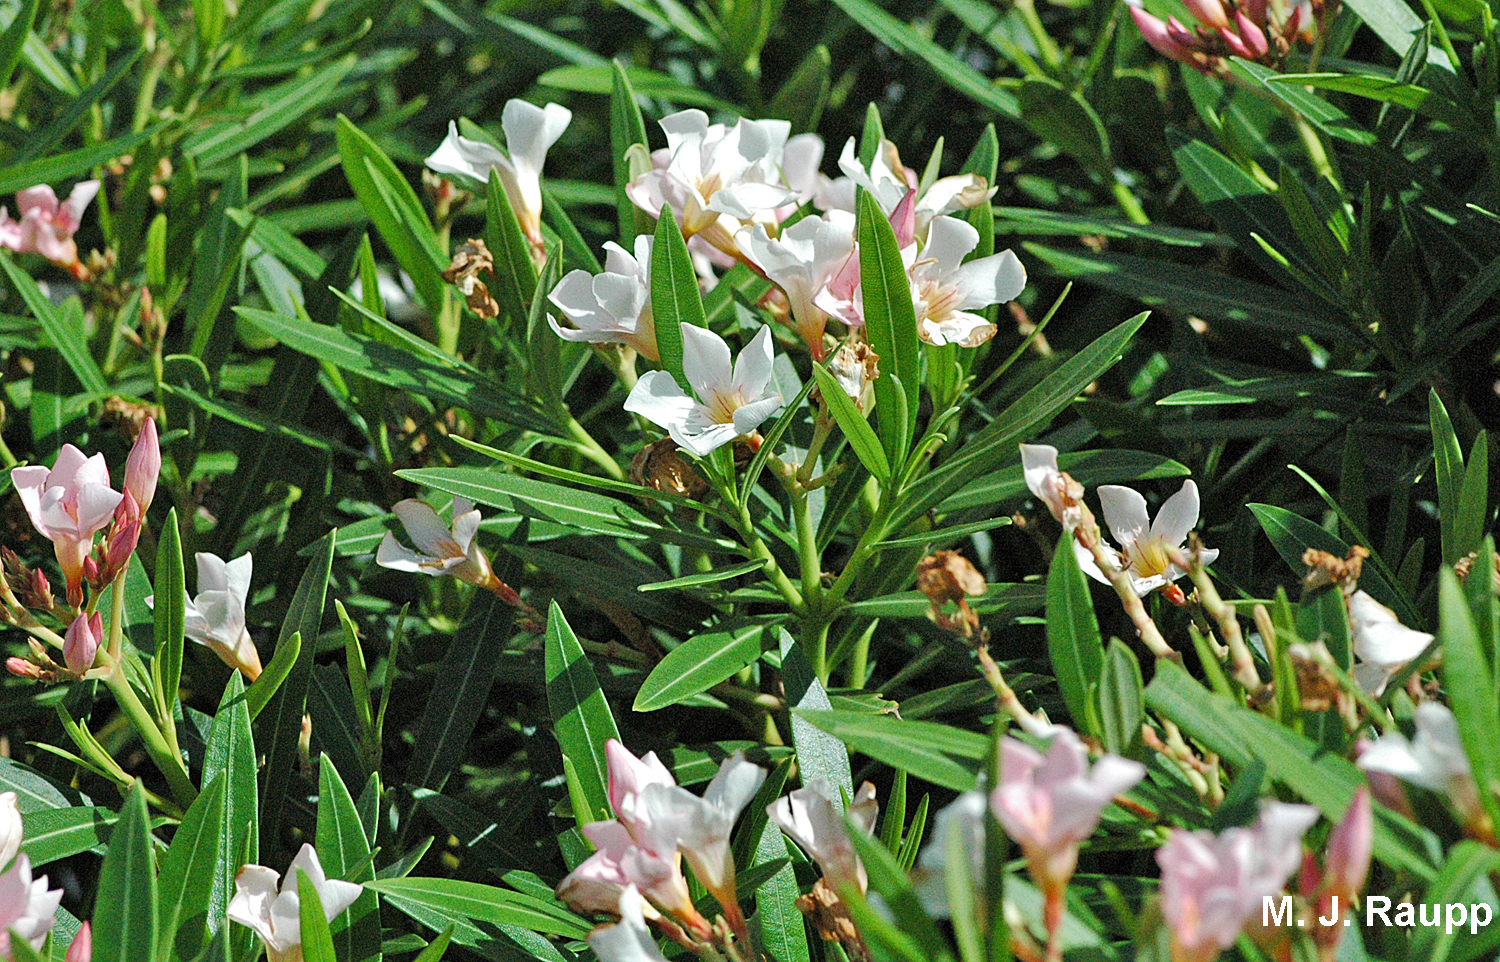 When colonists brought oleander to the New World, this plant of Mediterranean origin was readily fed upon by the spotted oleander caterpillar, a native of the Caribbean region.